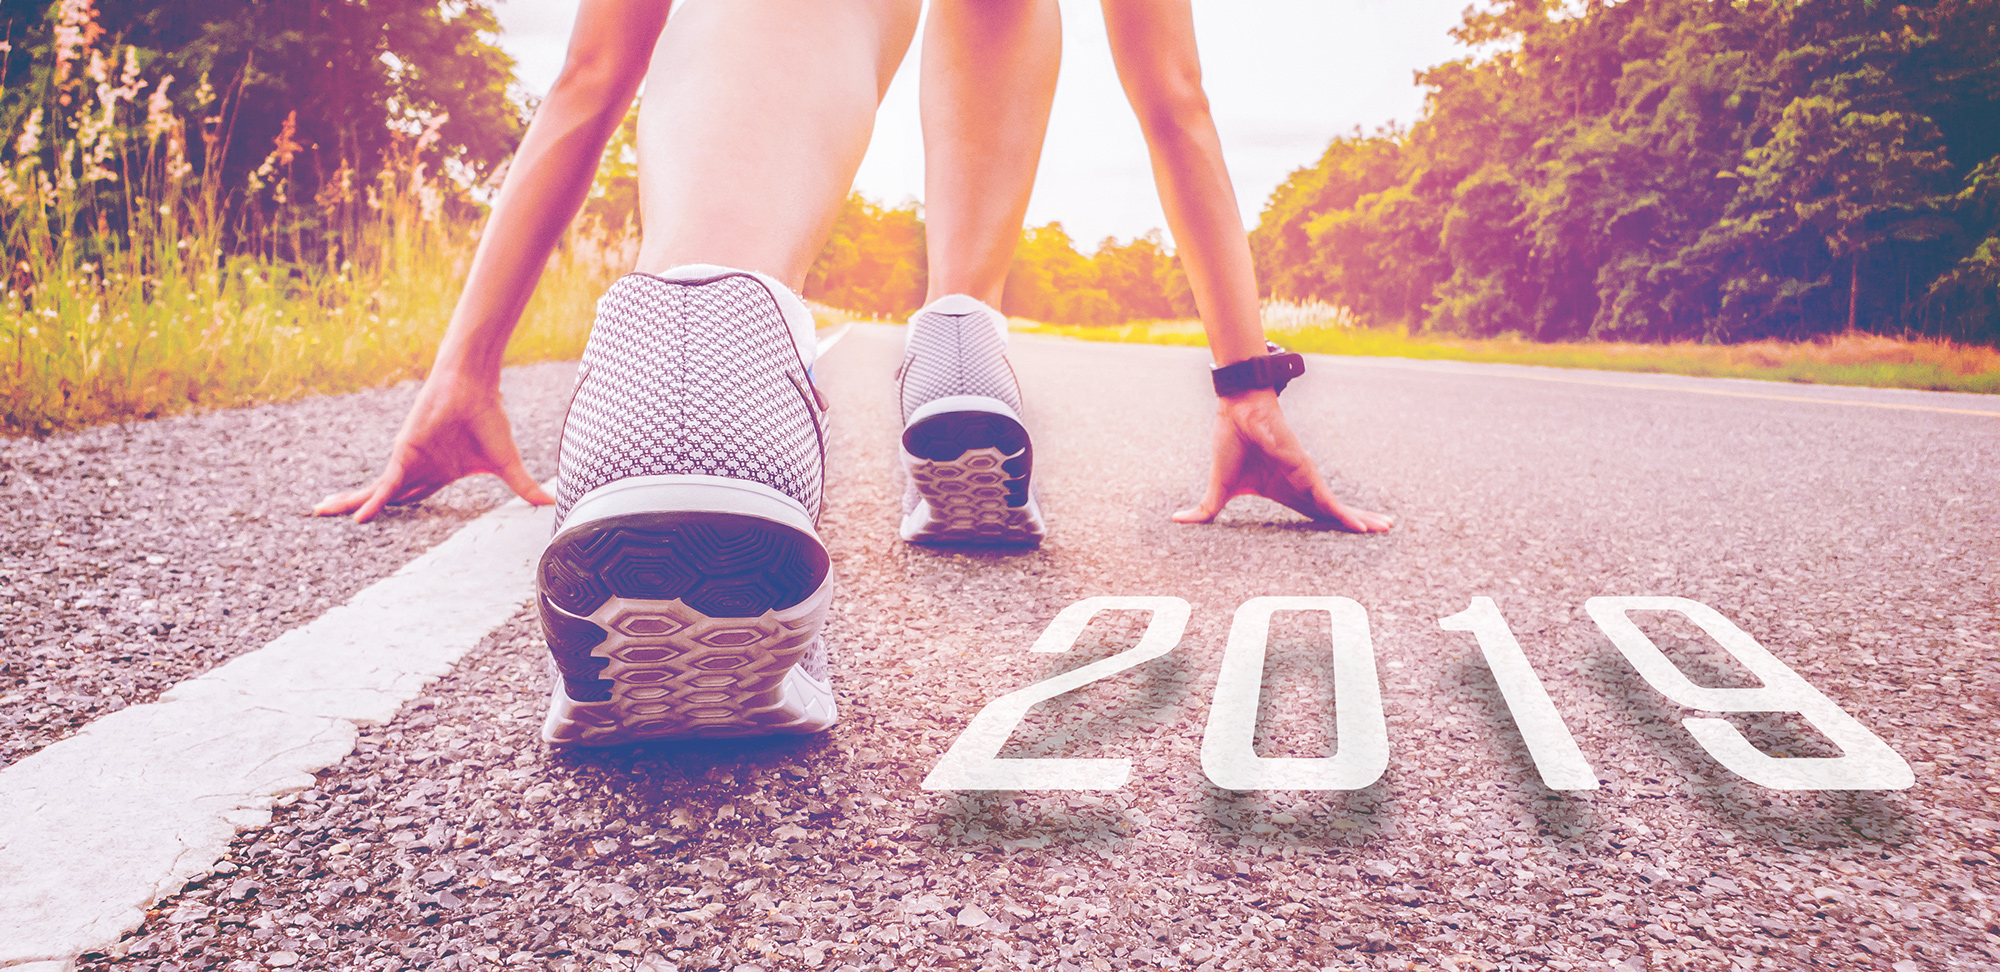 The year ahead for ukactive